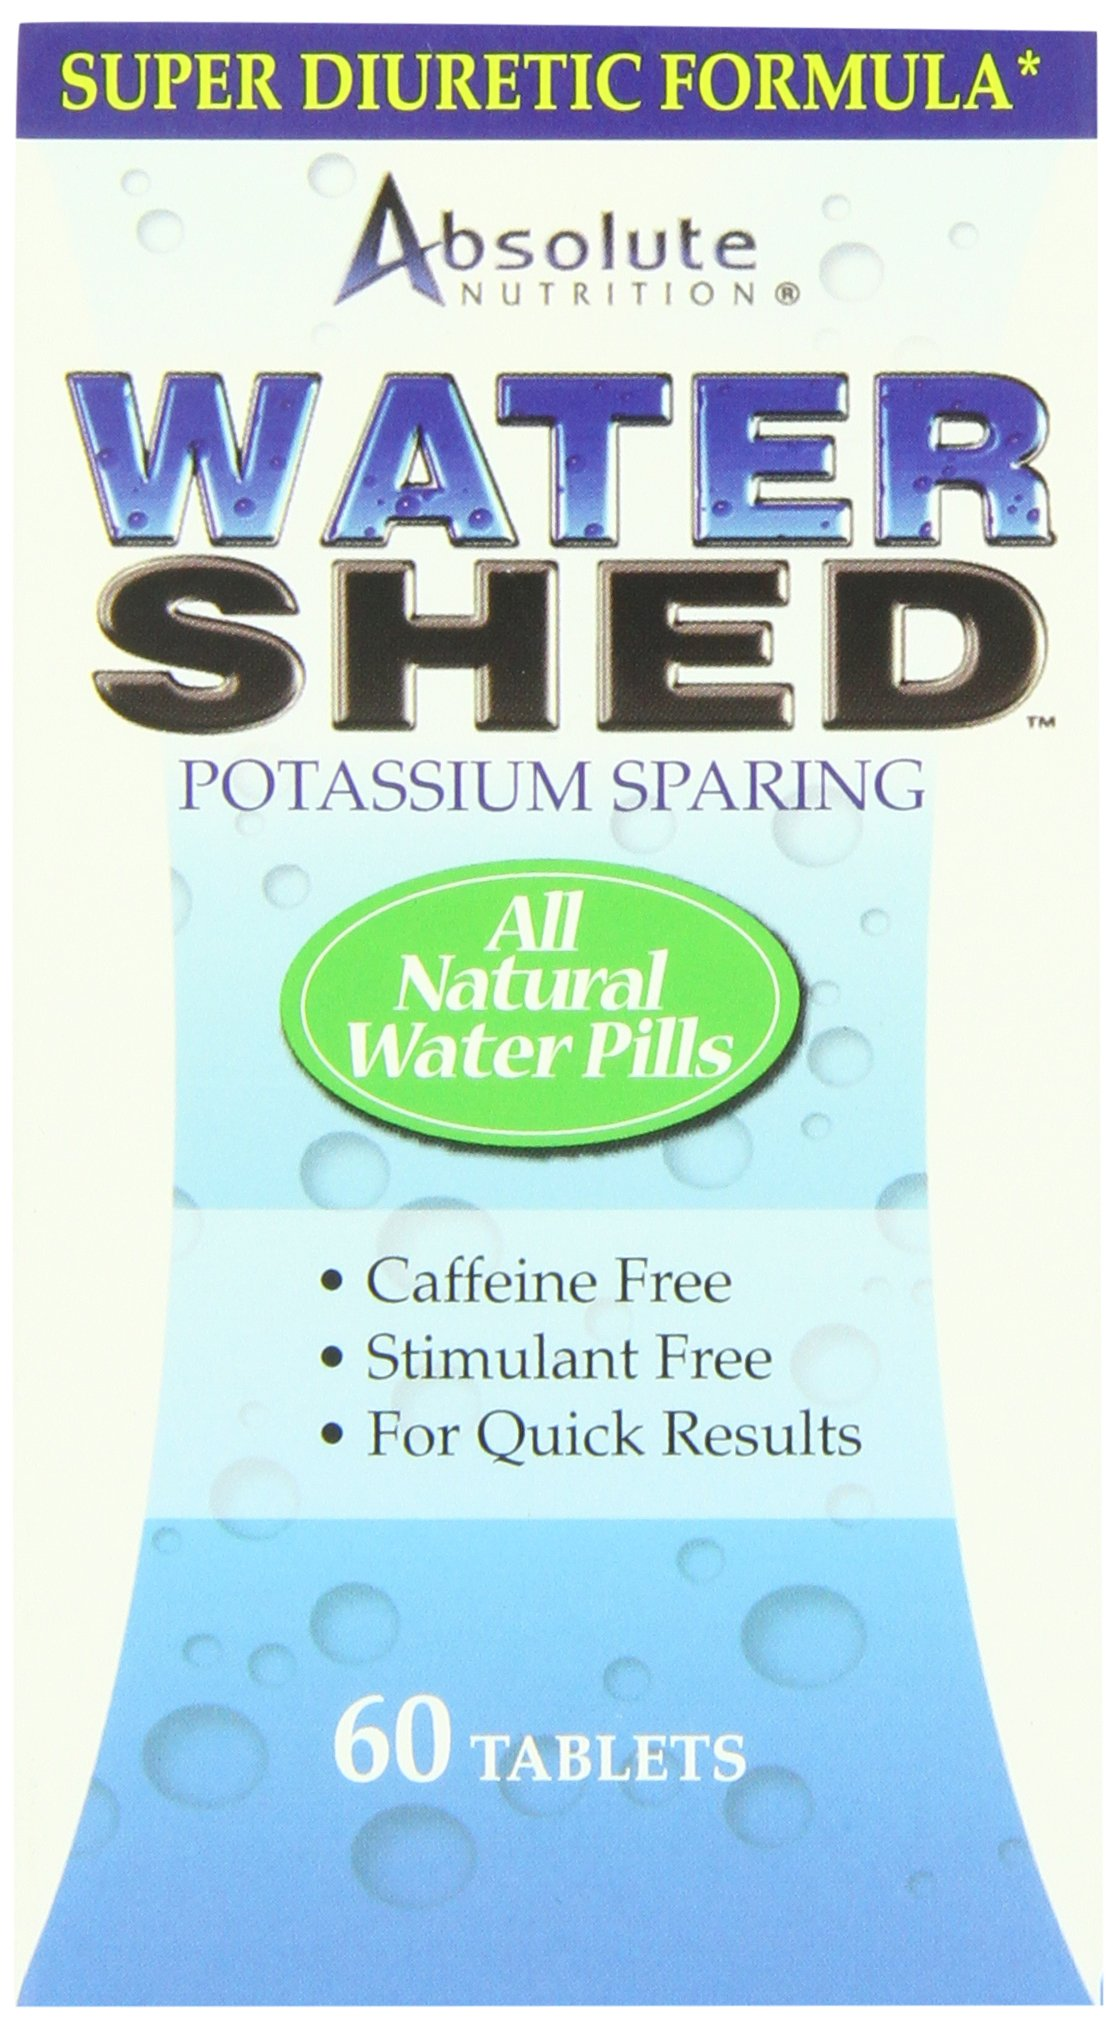 Absolute Nutrition Potassium Sparing Water Shed,  60 Tablets (Pack of 2)